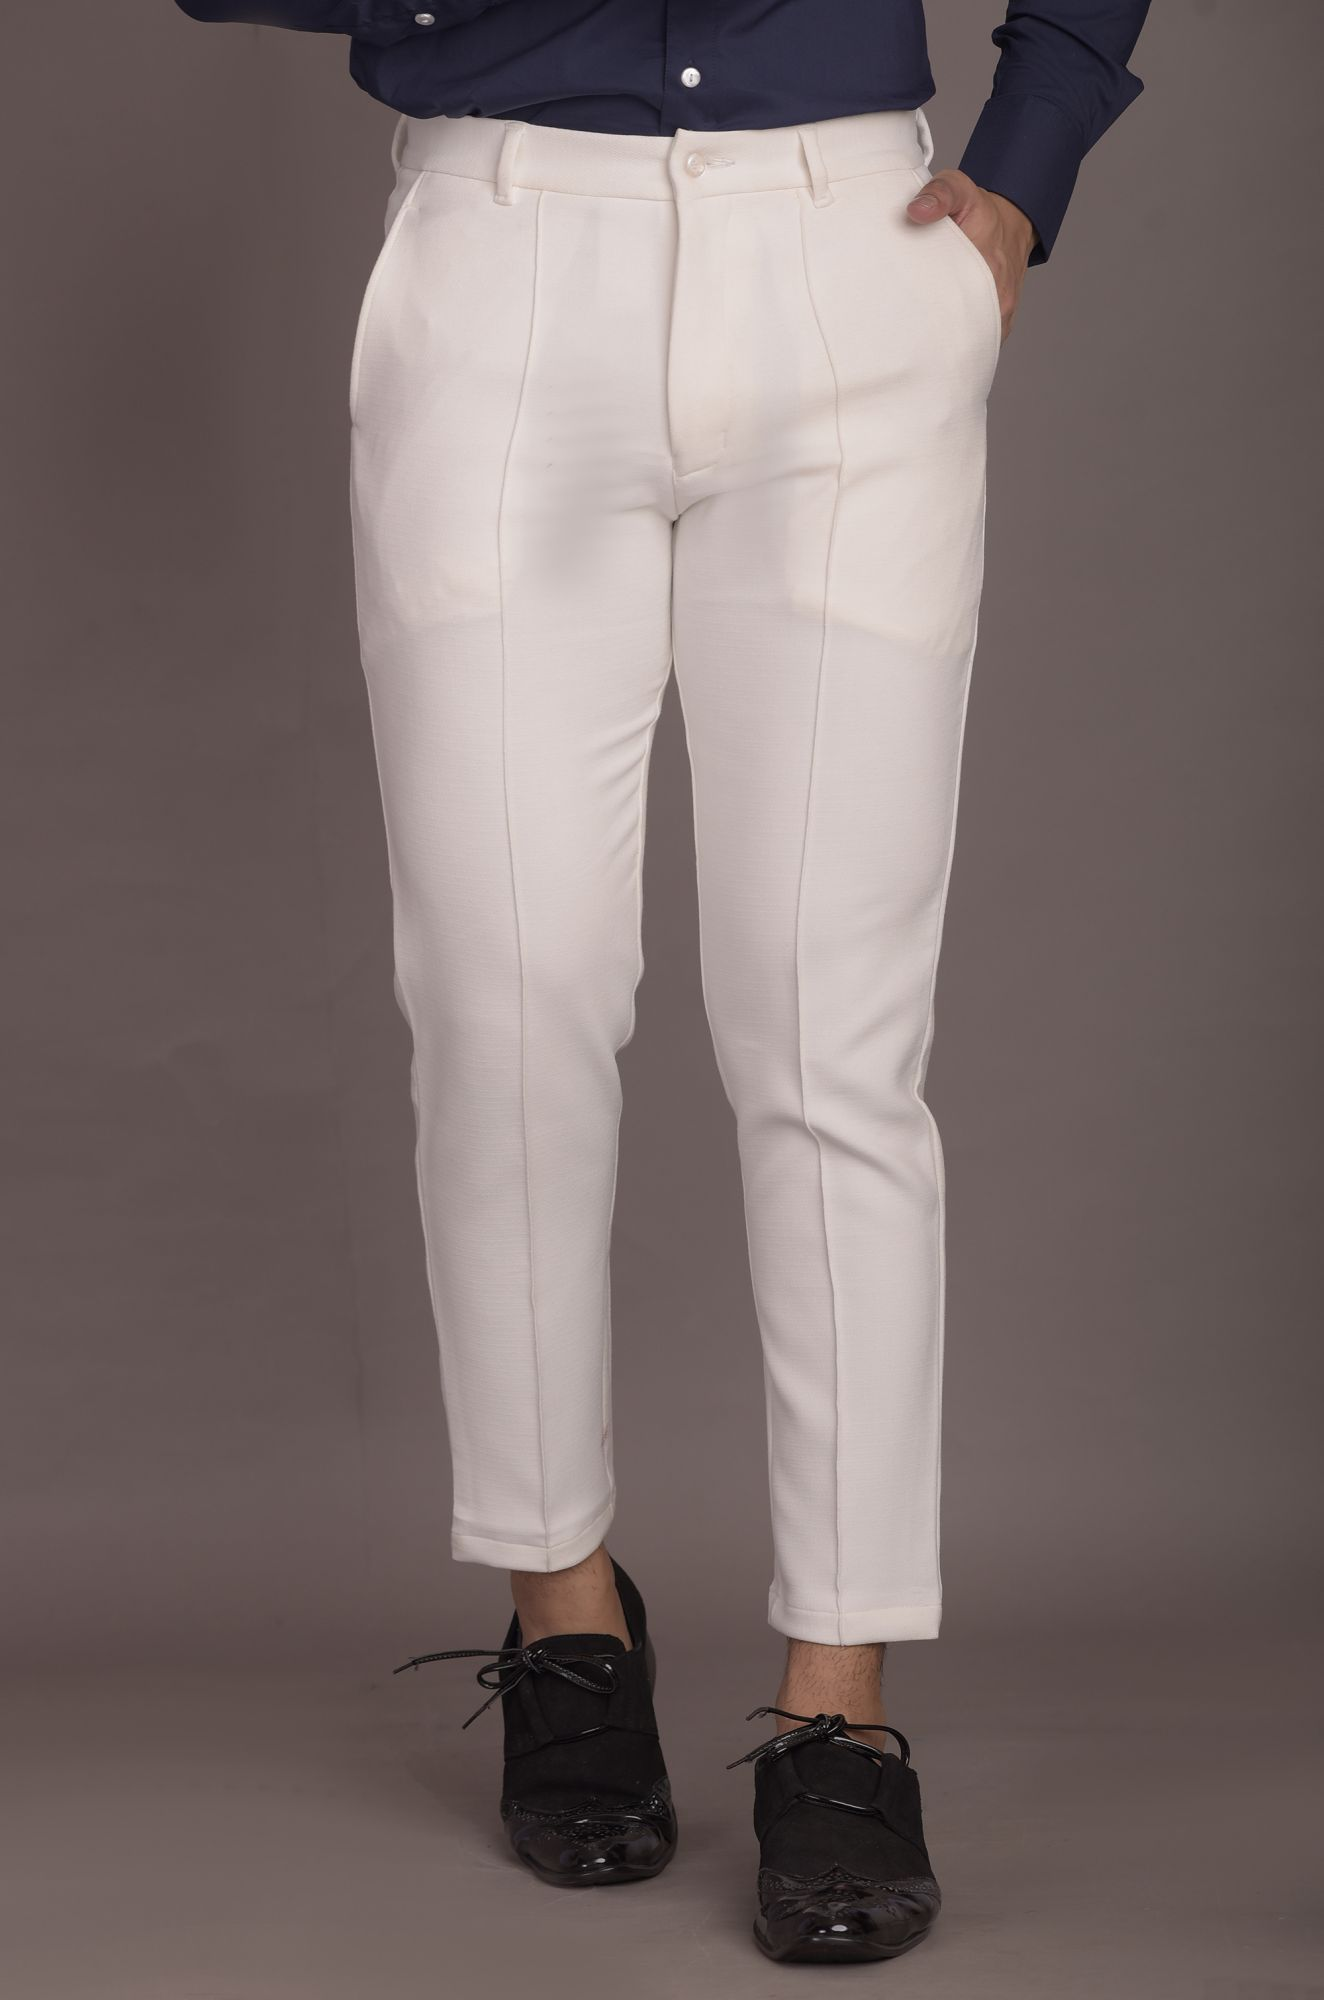 Tapered Fit Pants in White